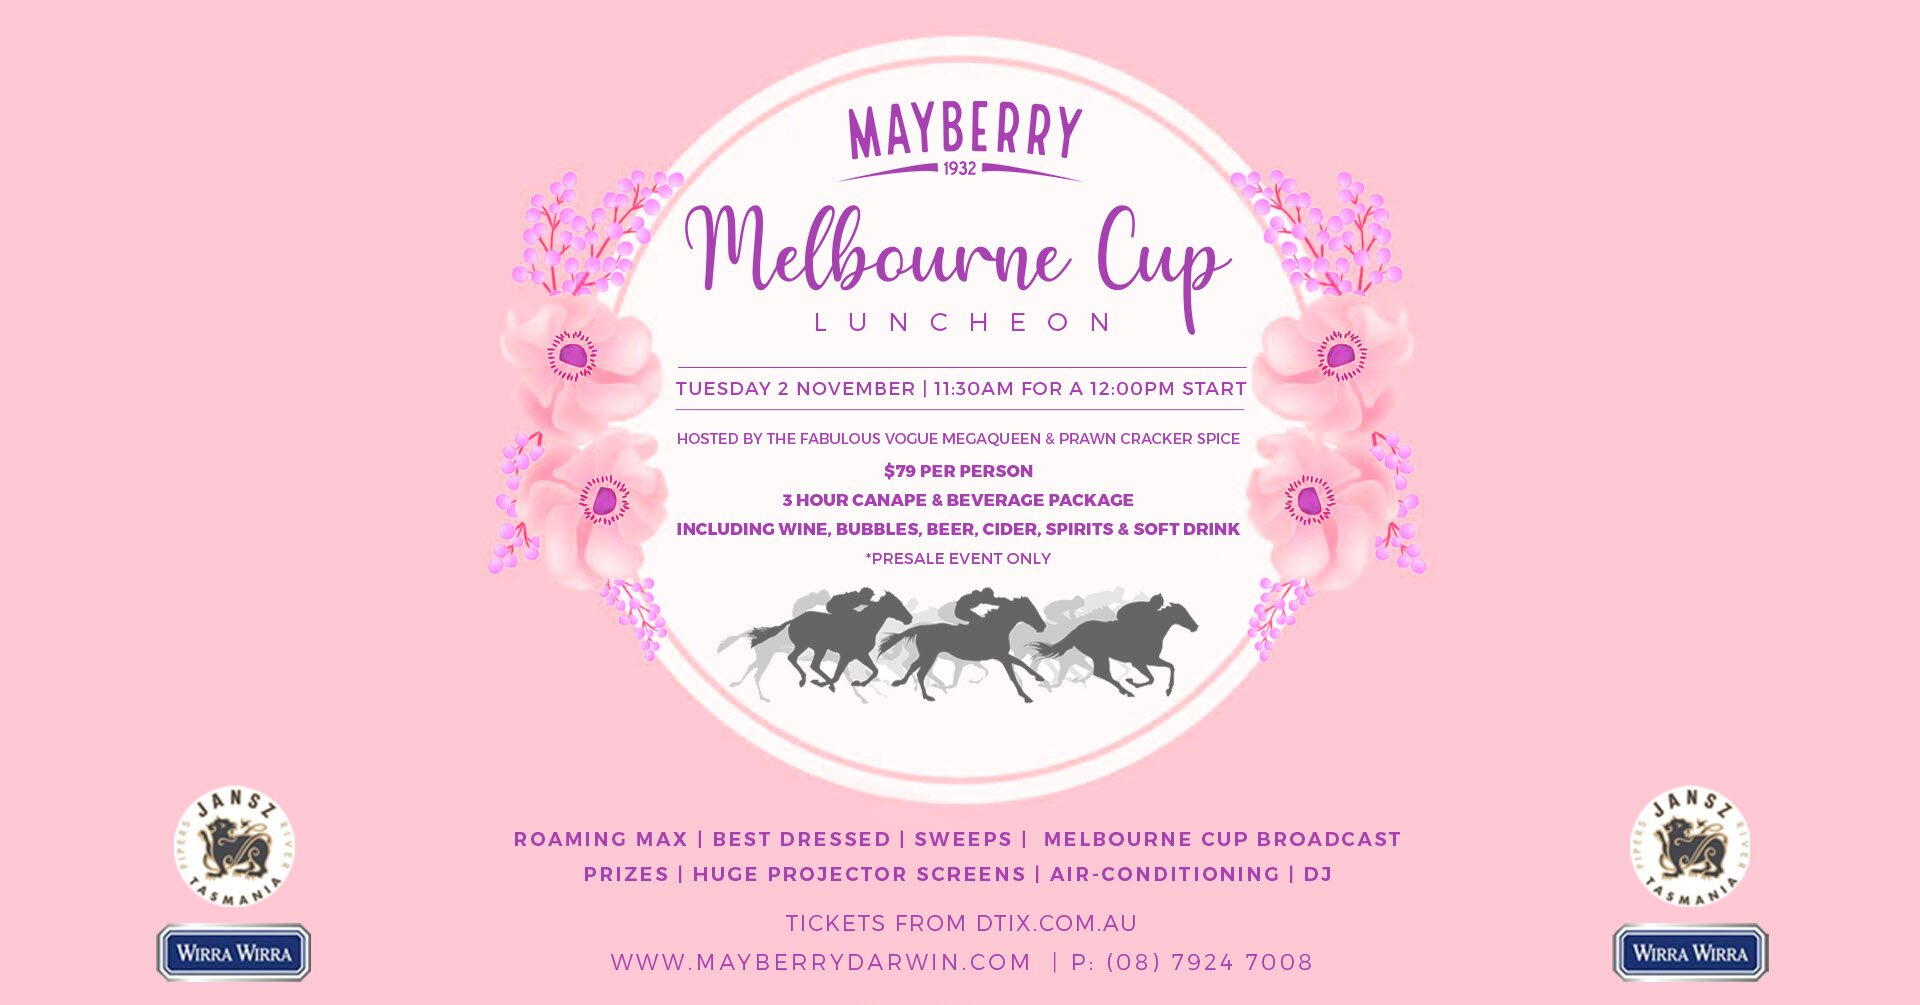 MELBOURNE CUP LUNCHEON